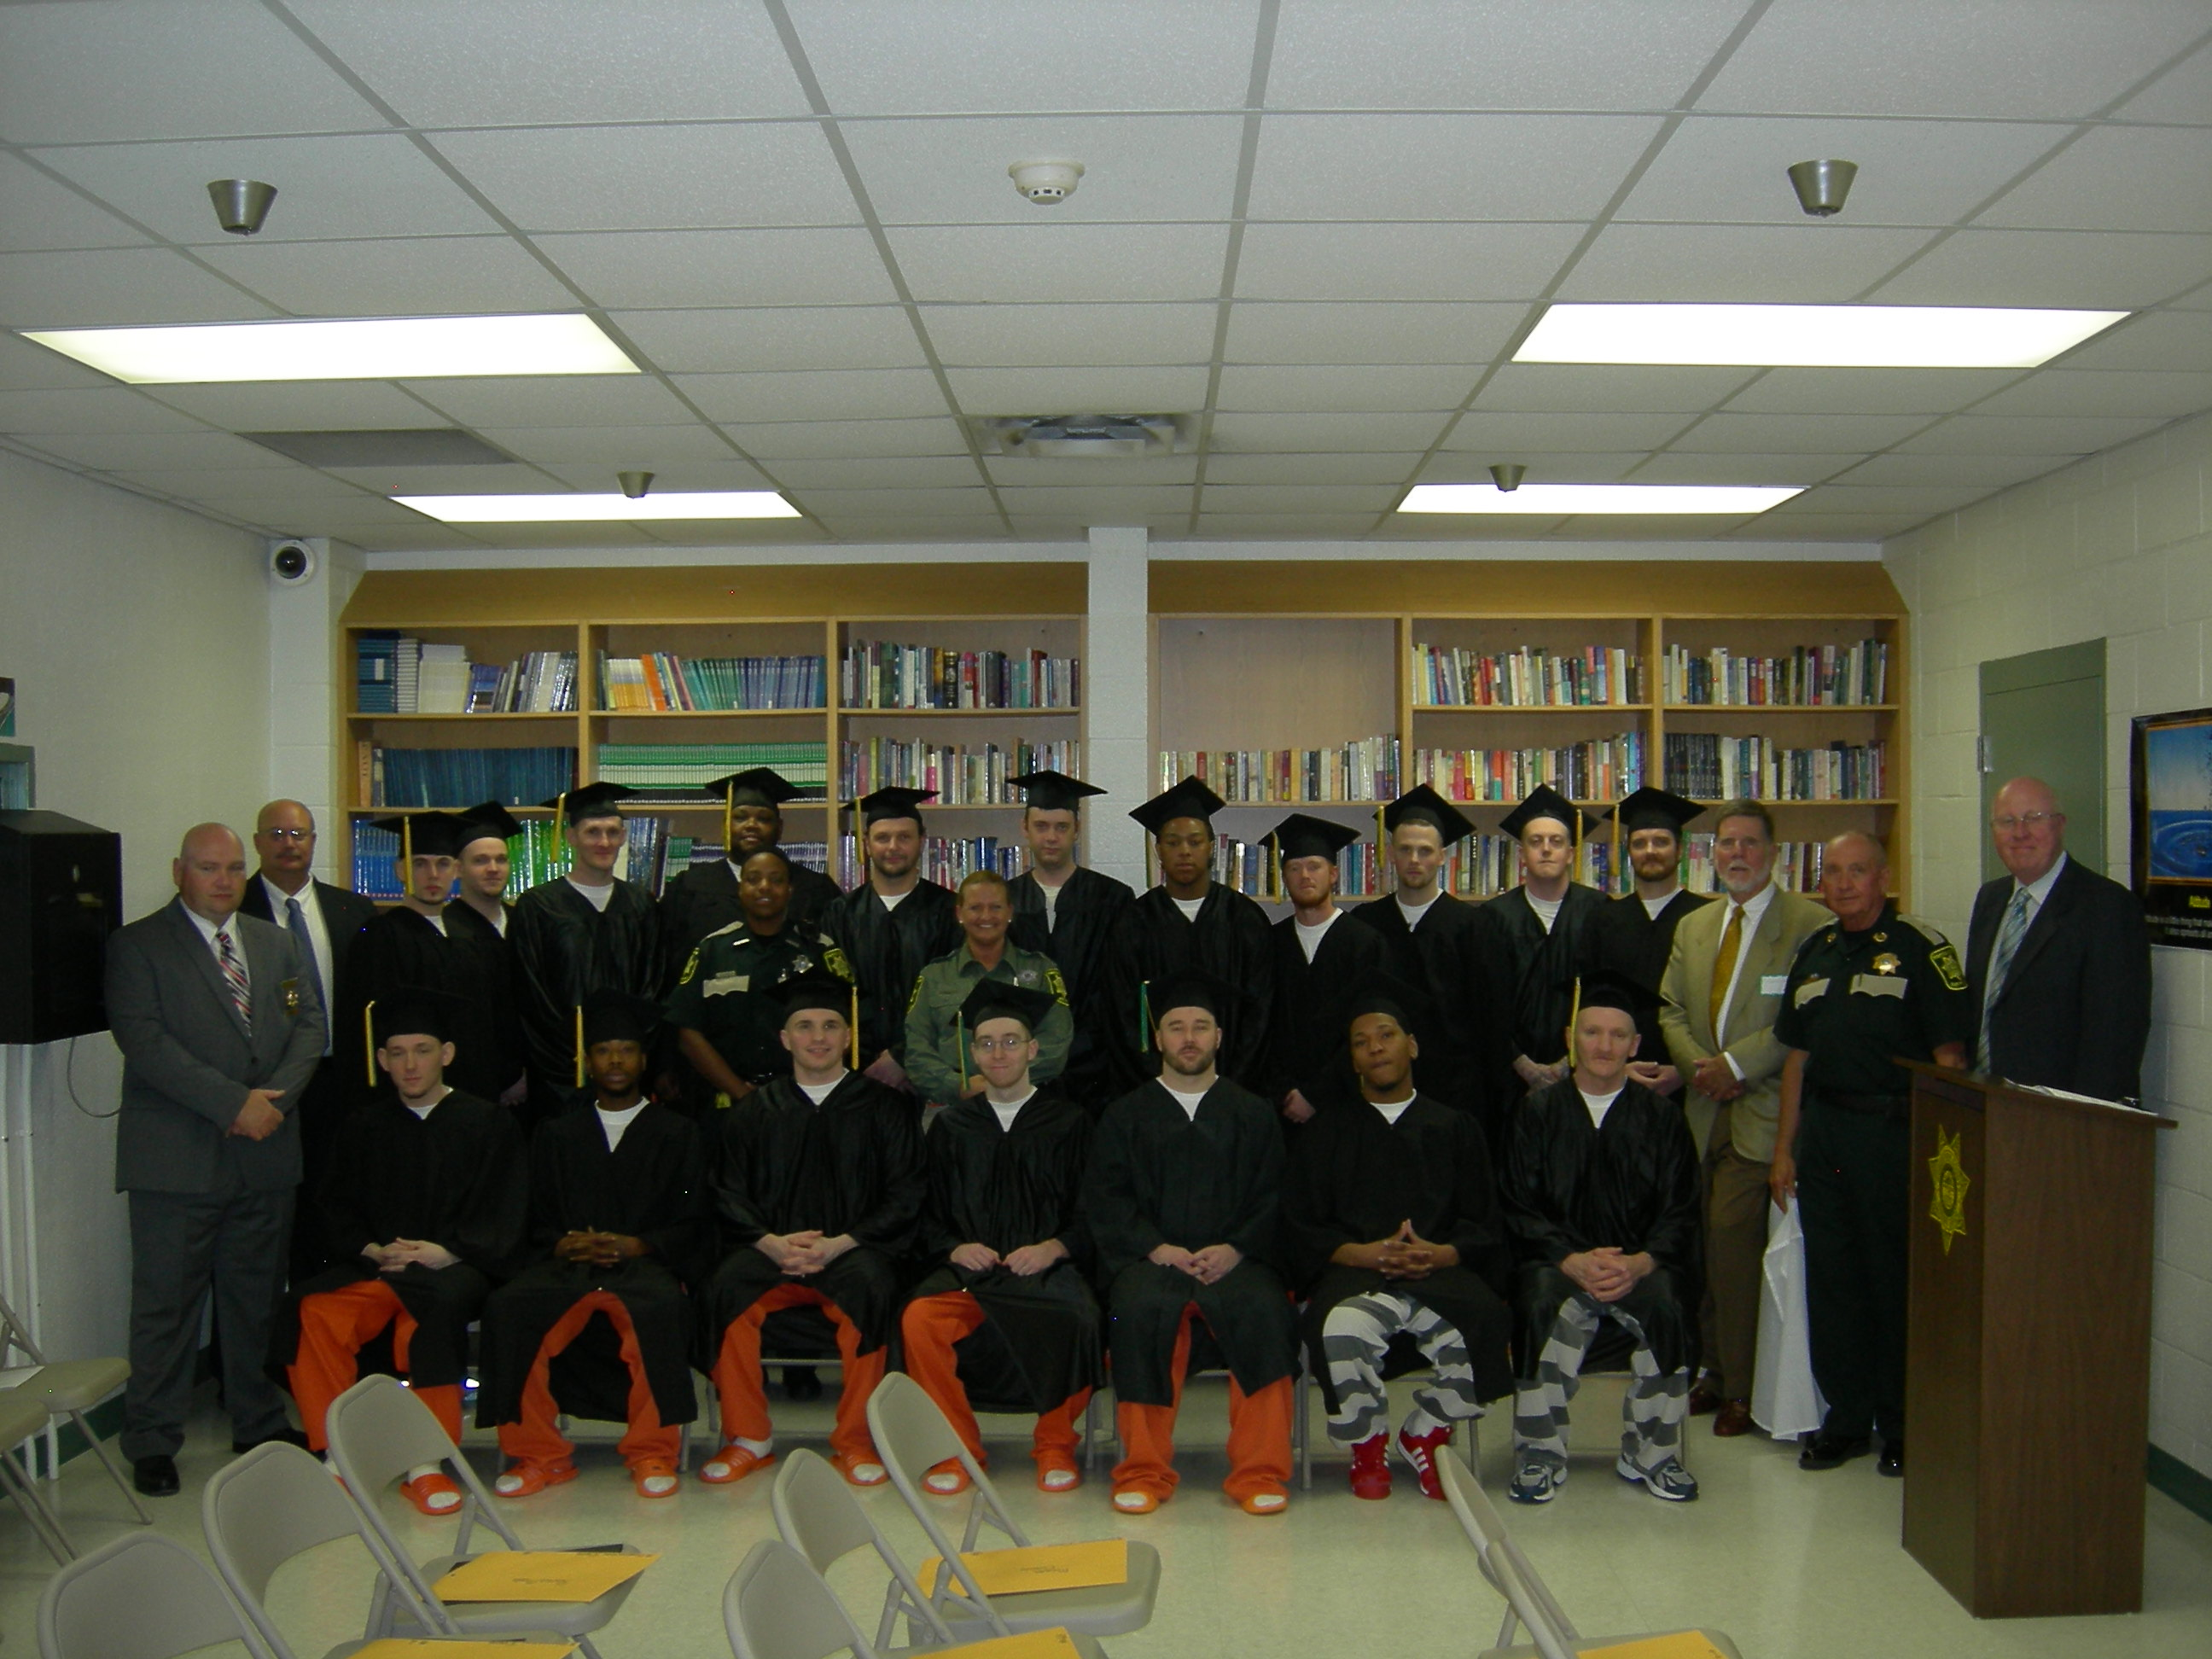 Tennessee robertson county springfield - First Ever Ged Graduation Ceremony Held At Detention Facility Robertson County Sheriff S Office